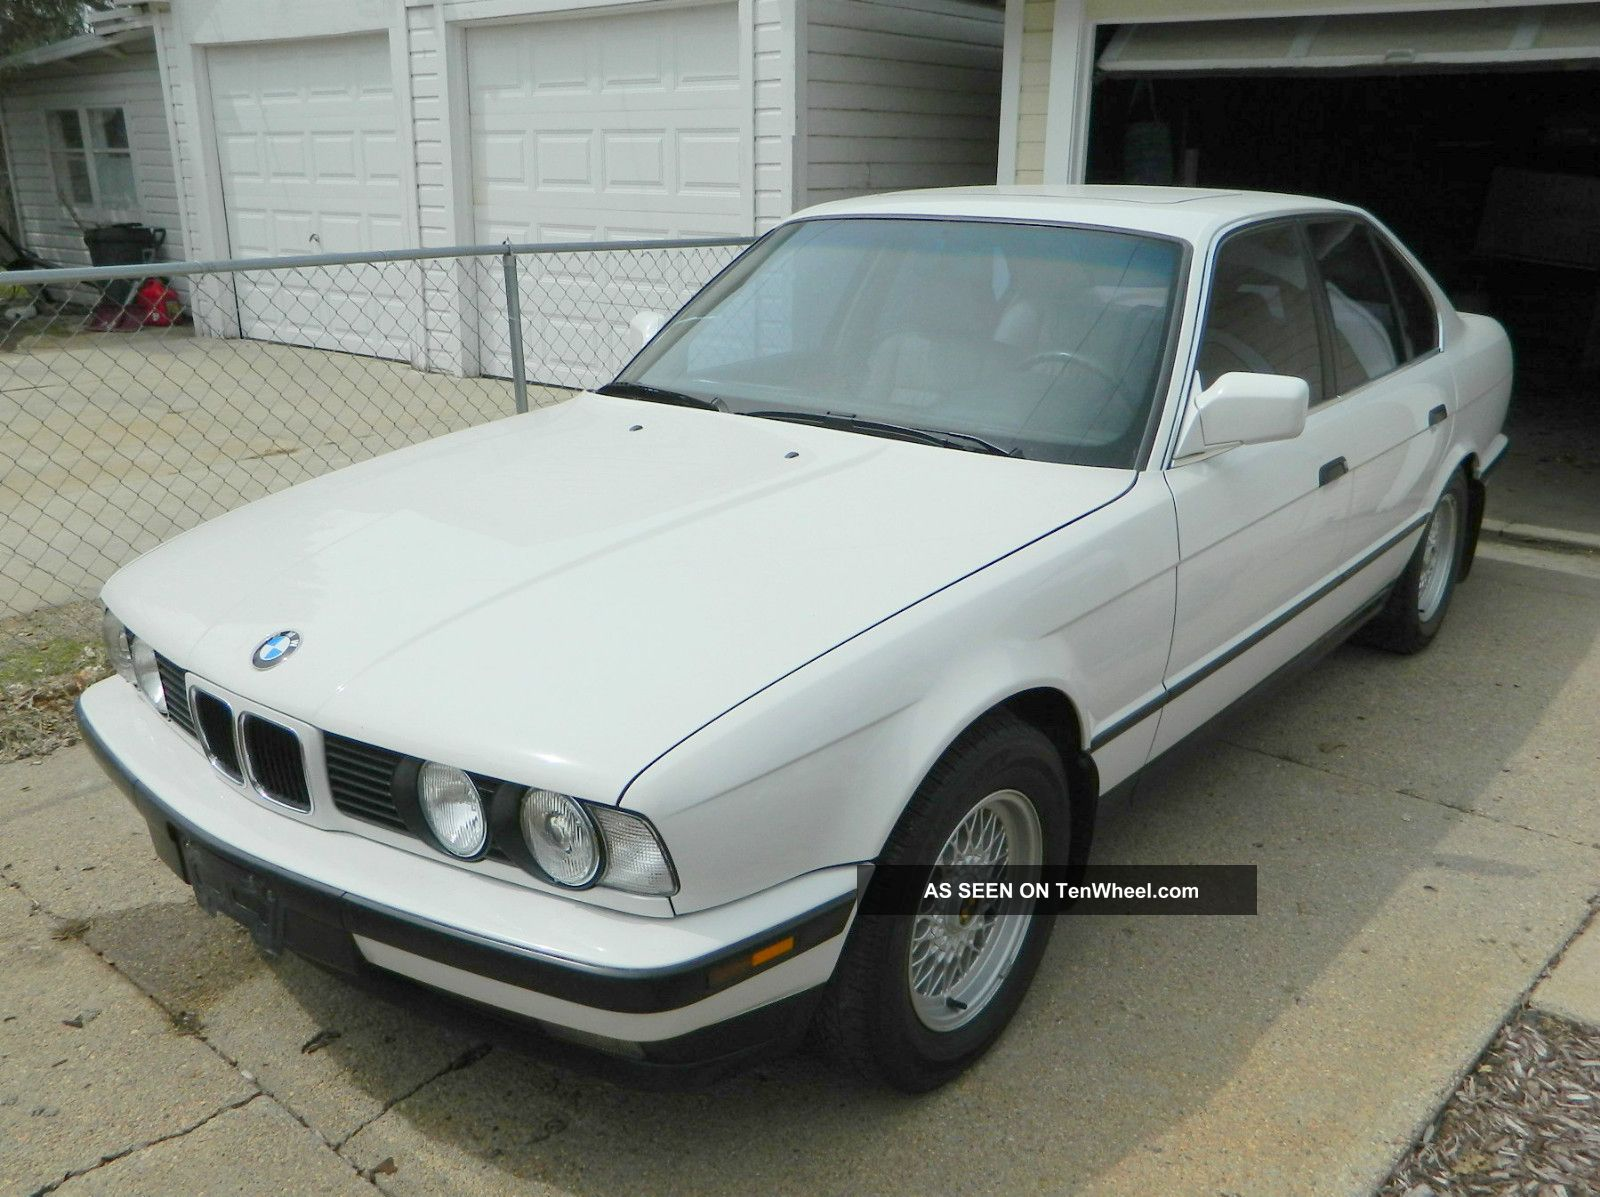 1989 Bmw 535i Sedan 5-Series photo